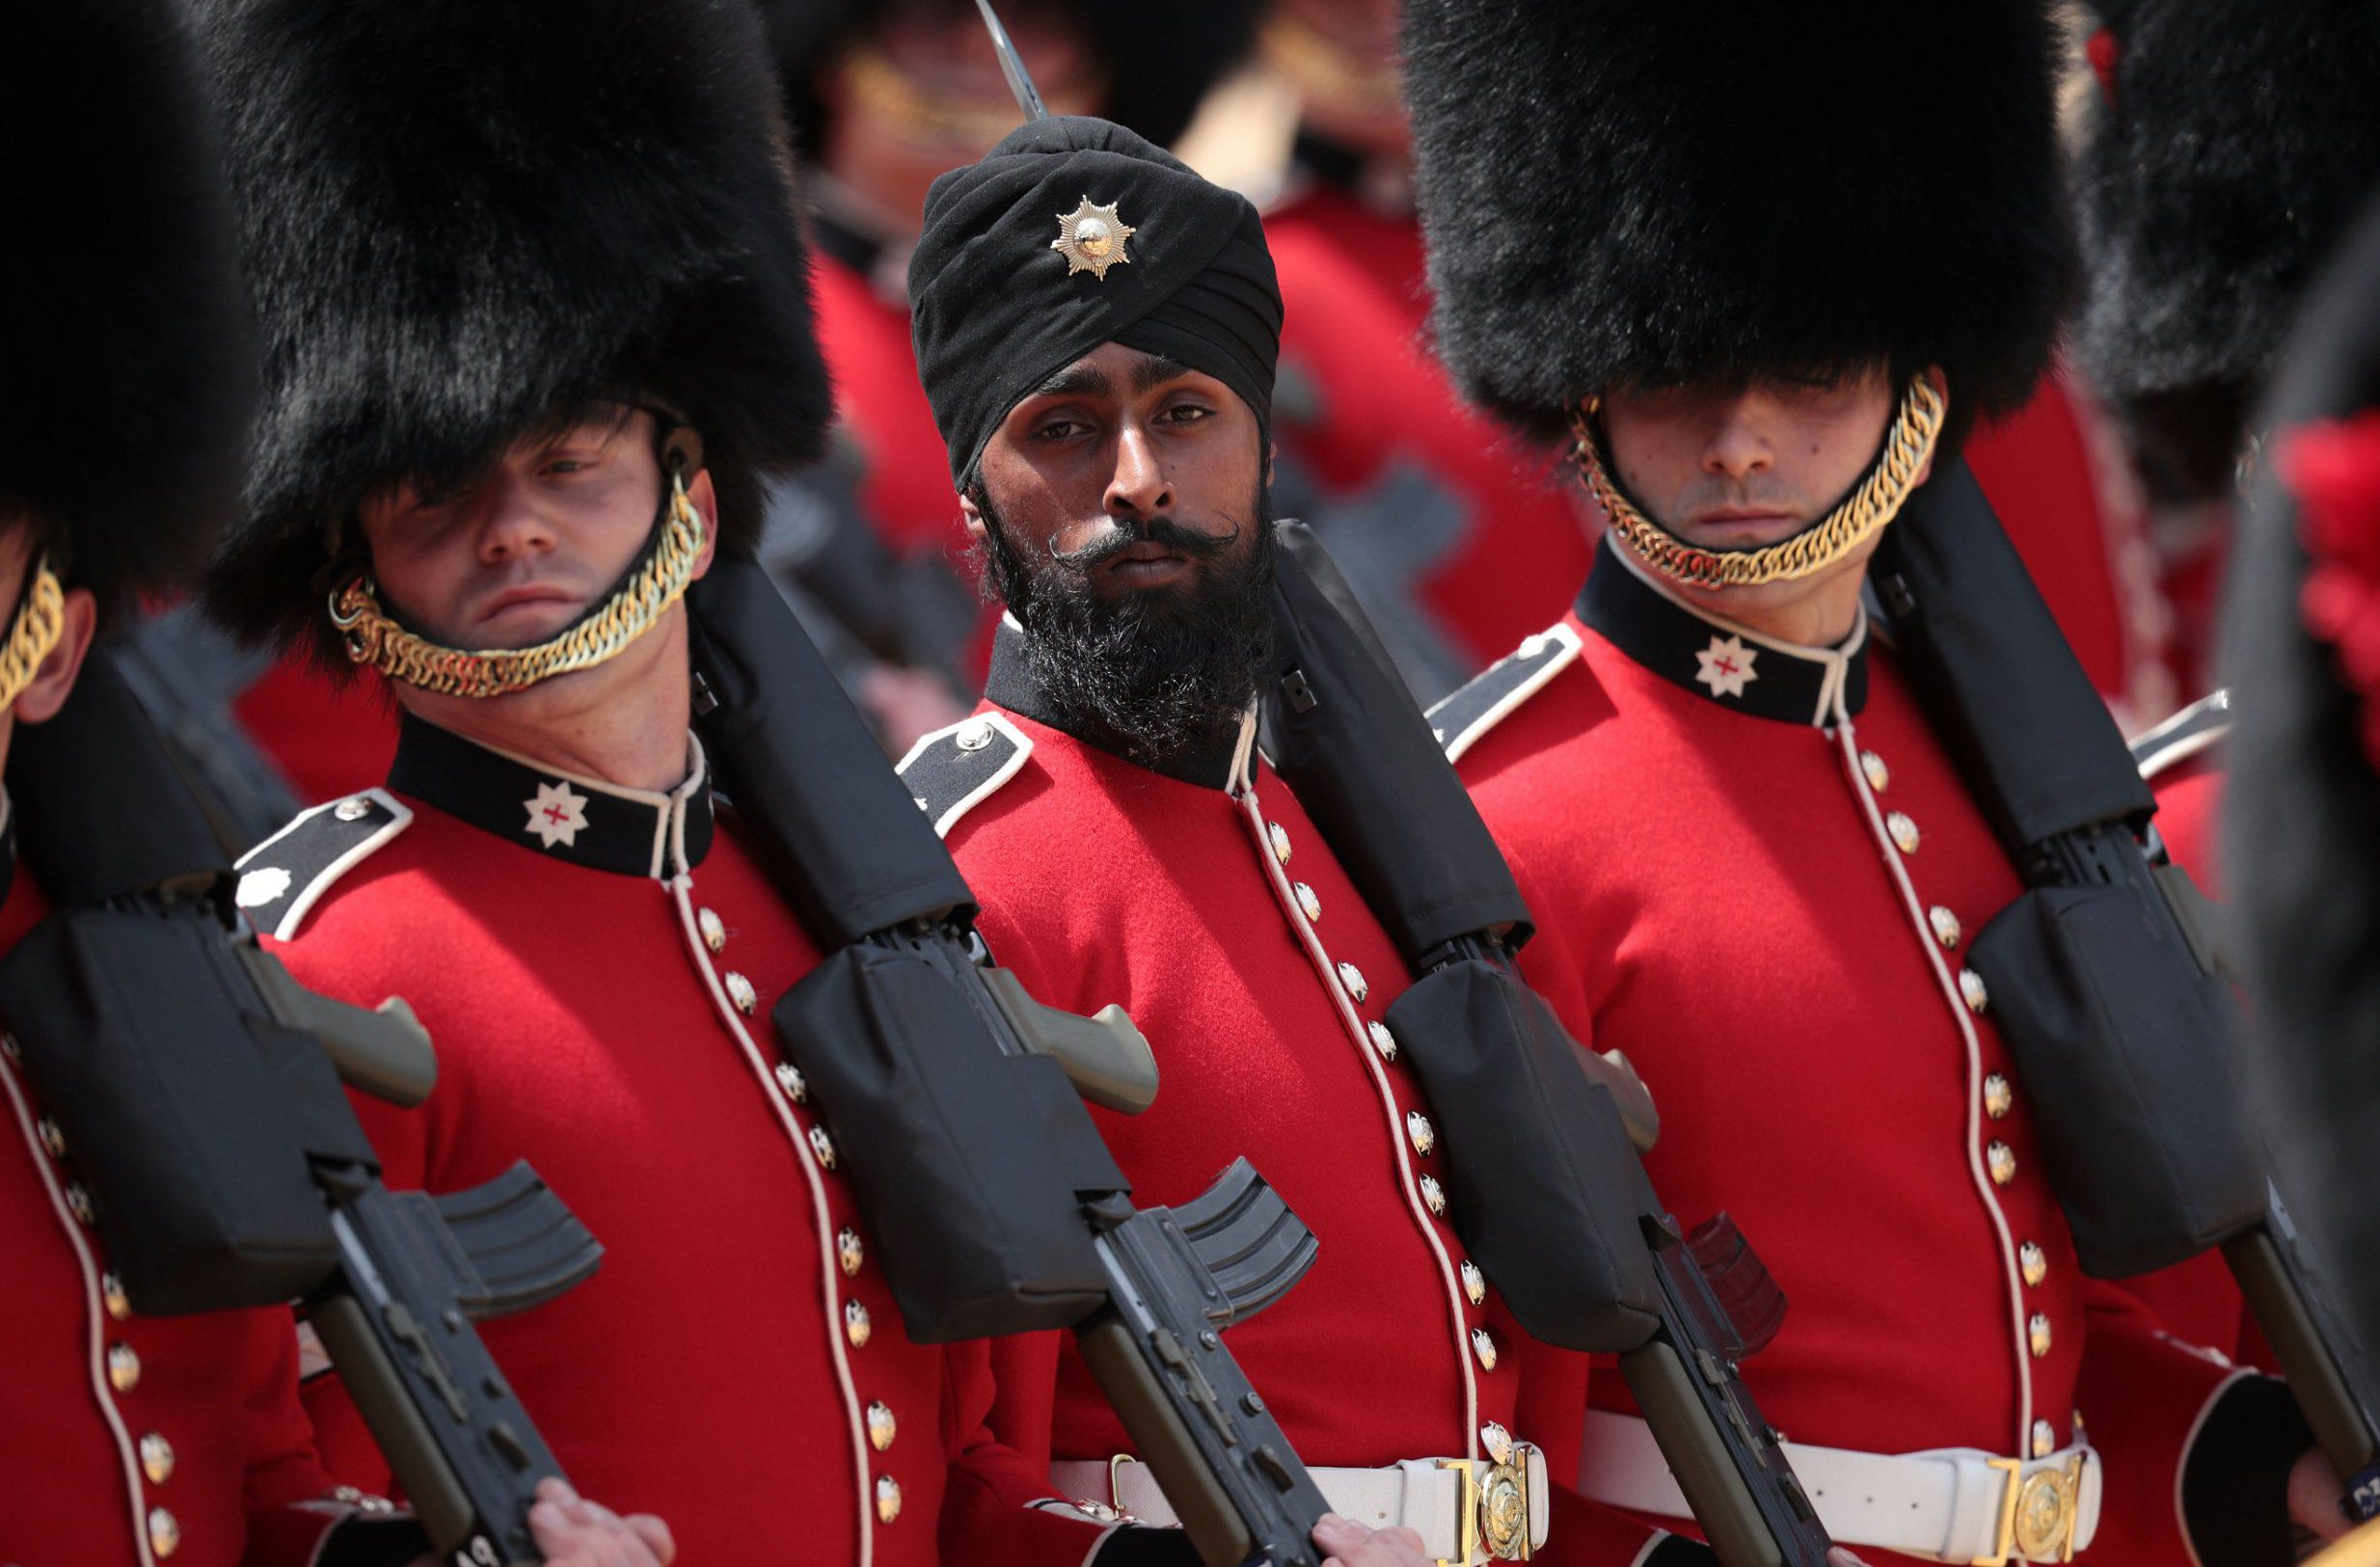 LONDON, ENGLAND - JUNE 09: Coldstream Guards soldier Charanpreet Singh Lall the first to wear a turban during the ceremony at The Royal Horseguards during Trooping The Colour ceremony on June 9, 2018 in London, England. The annual ceremony involving over 1400 guardsmen and cavalry, is believed to have first been performed during the reign of King Charles II. The parade marks the official birthday of the Sovereign, even though the Queen's actual birthday is on April 21st. (Photo by Dan Kitwood/Getty Images)